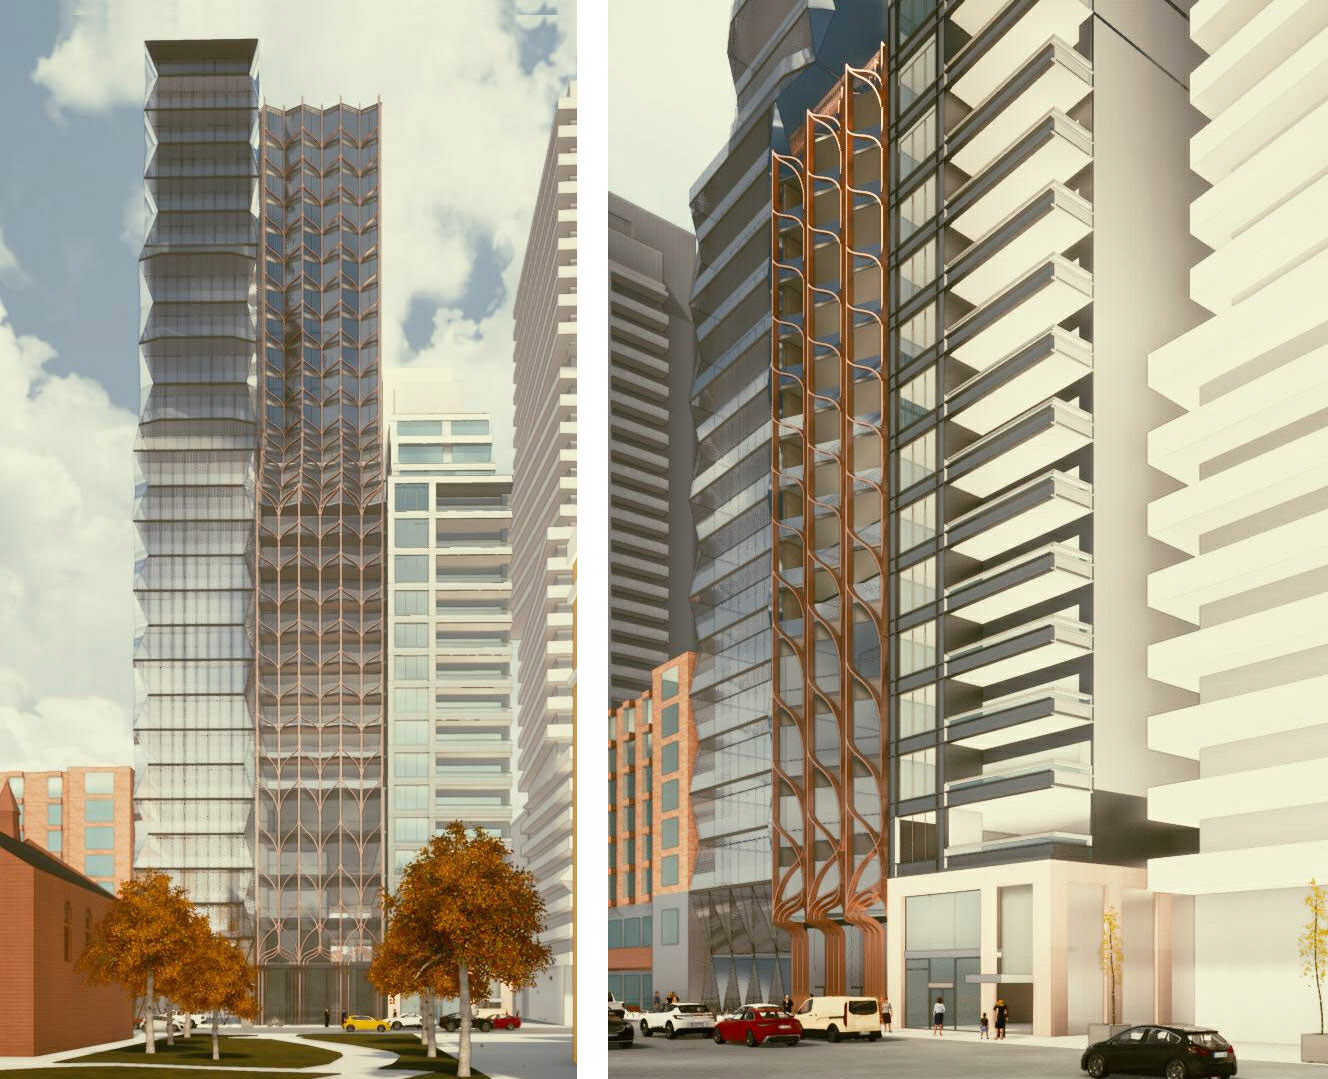 208 Bloor West, Toronto, designed by BDP Quadrangle for Plaza Partners